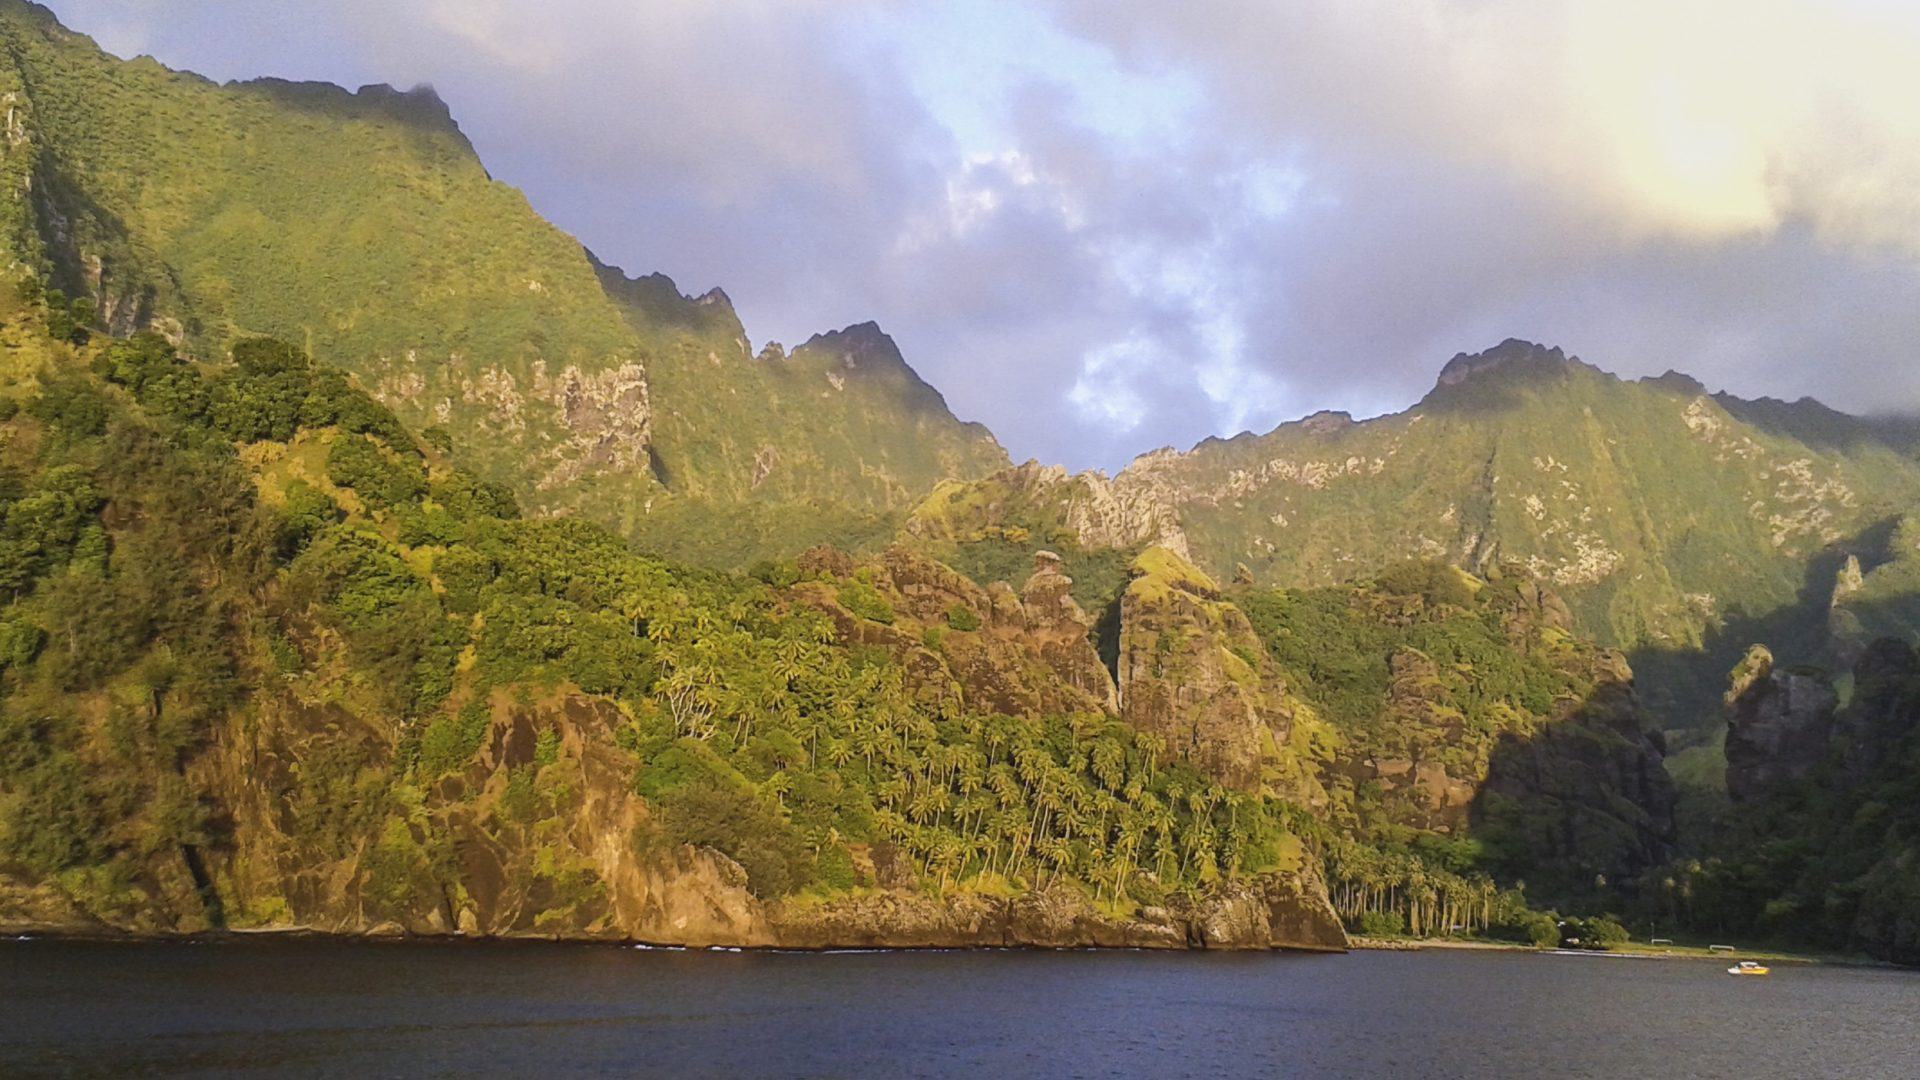 Hanavave harbour or Bay of Virgins on the island of Fatu Hiva in the Marquesas Islands, French Polynesia, sunset stop for Aranui 3 cargo cruise ship